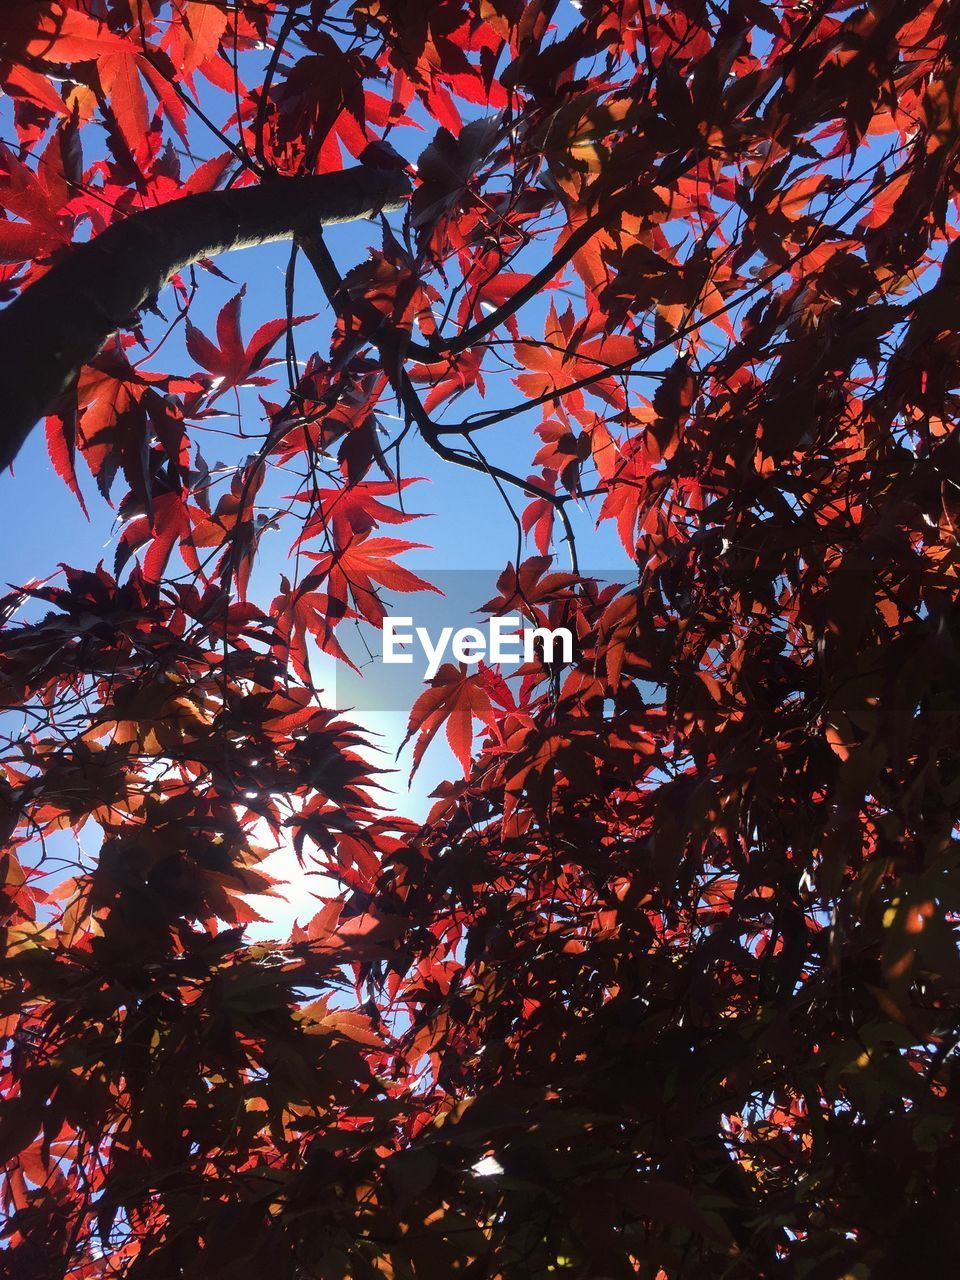 tree, plant, low angle view, growth, autumn, no people, branch, change, beauty in nature, leaf, nature, plant part, sky, outdoors, orange color, tranquility, red, day, sunlight, backgrounds, leaves, maple leaf, natural condition